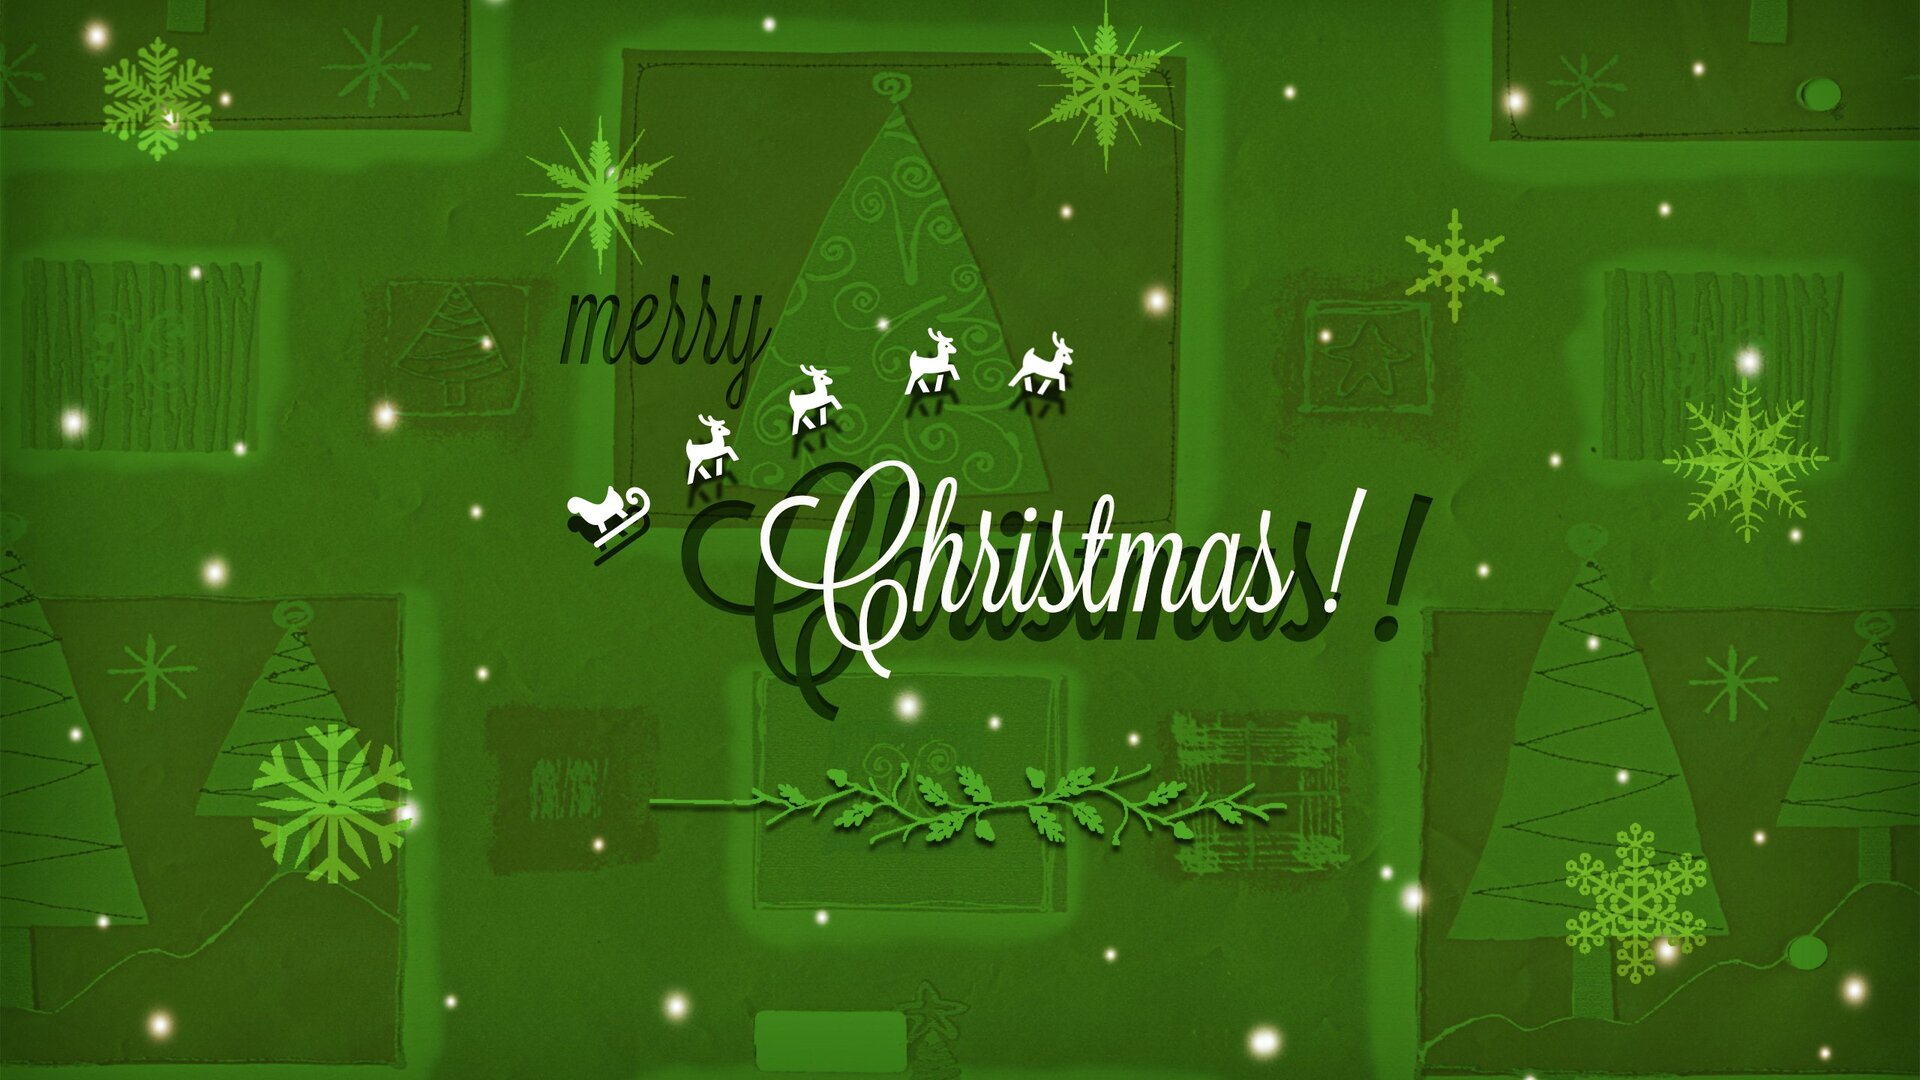 Christmas Hd Wallpaper For Android.1920x1080 Merry Christmas Hd Laptop Full Hd 1080p Hd 4k